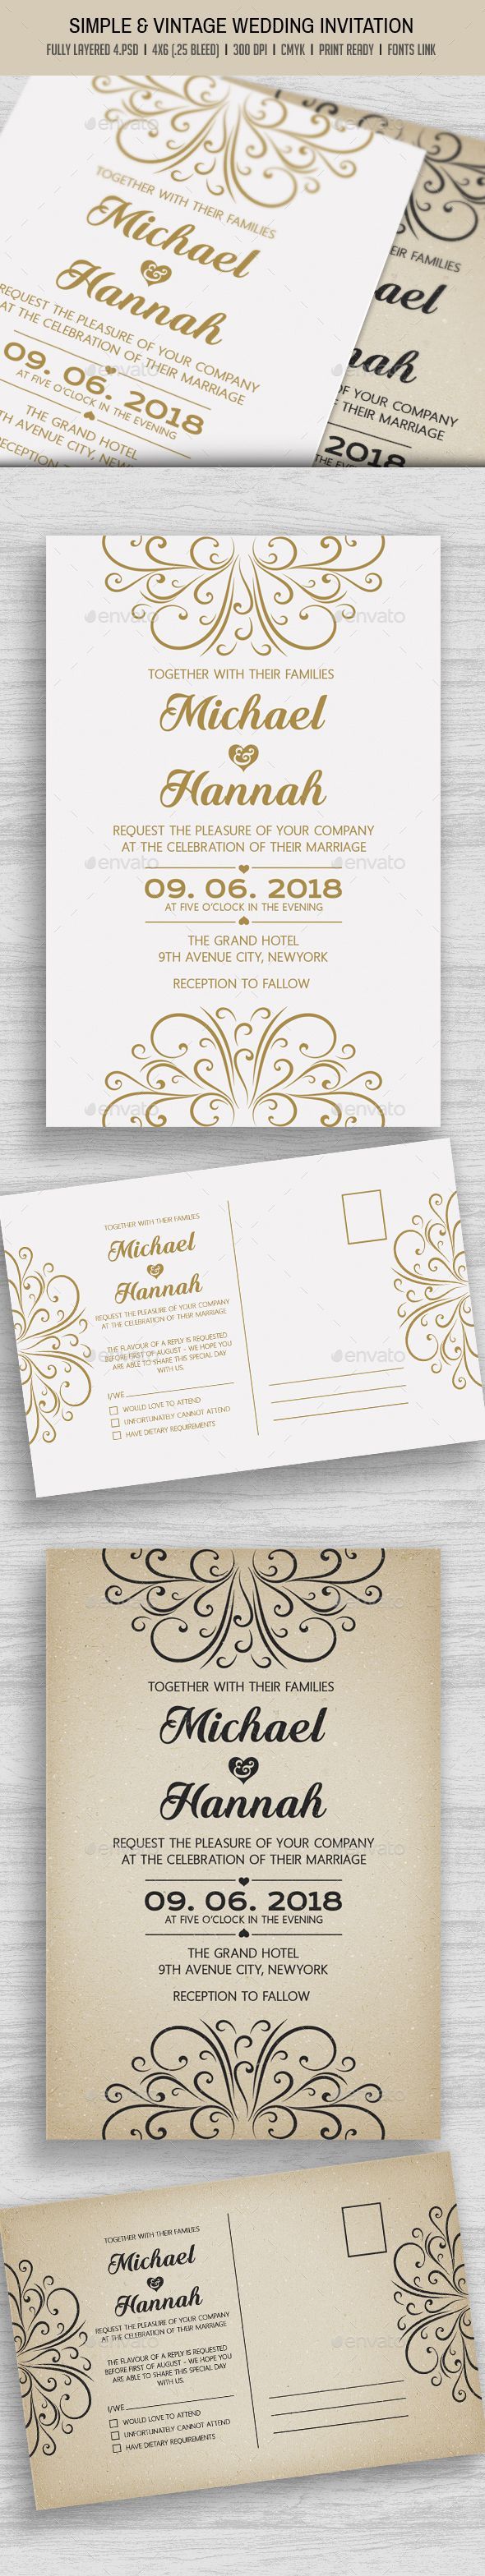 1753 best Card Design Templates images on Pinterest | Print ...